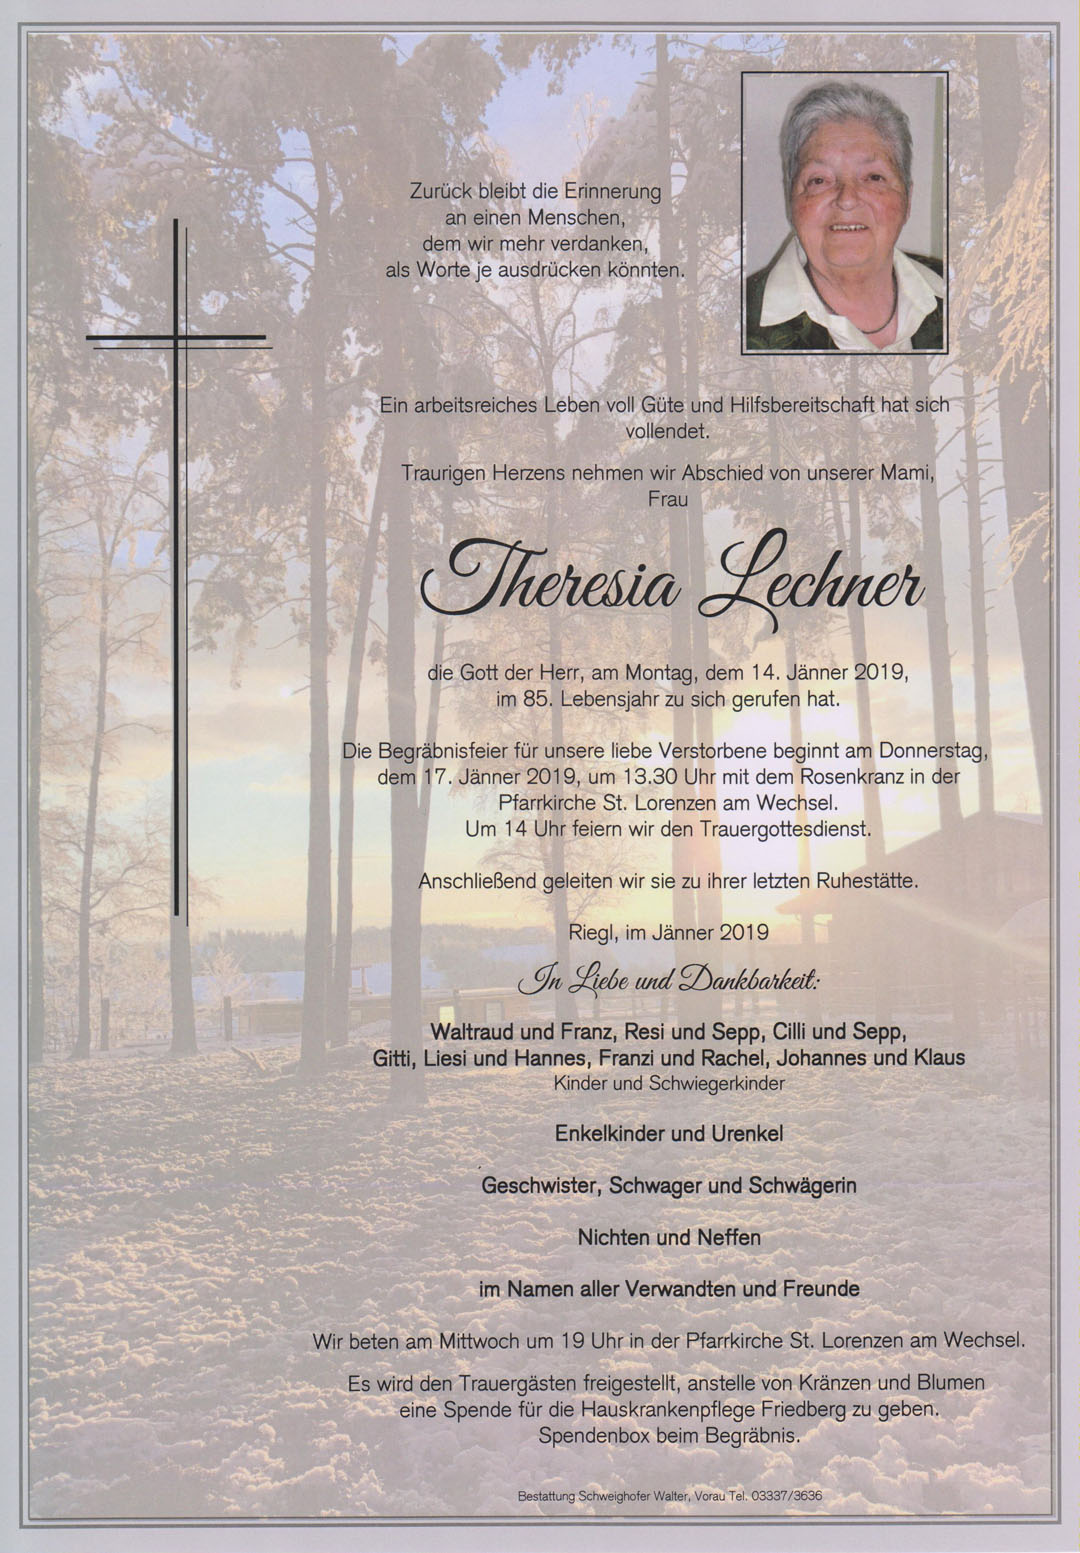 Theresia Lechner